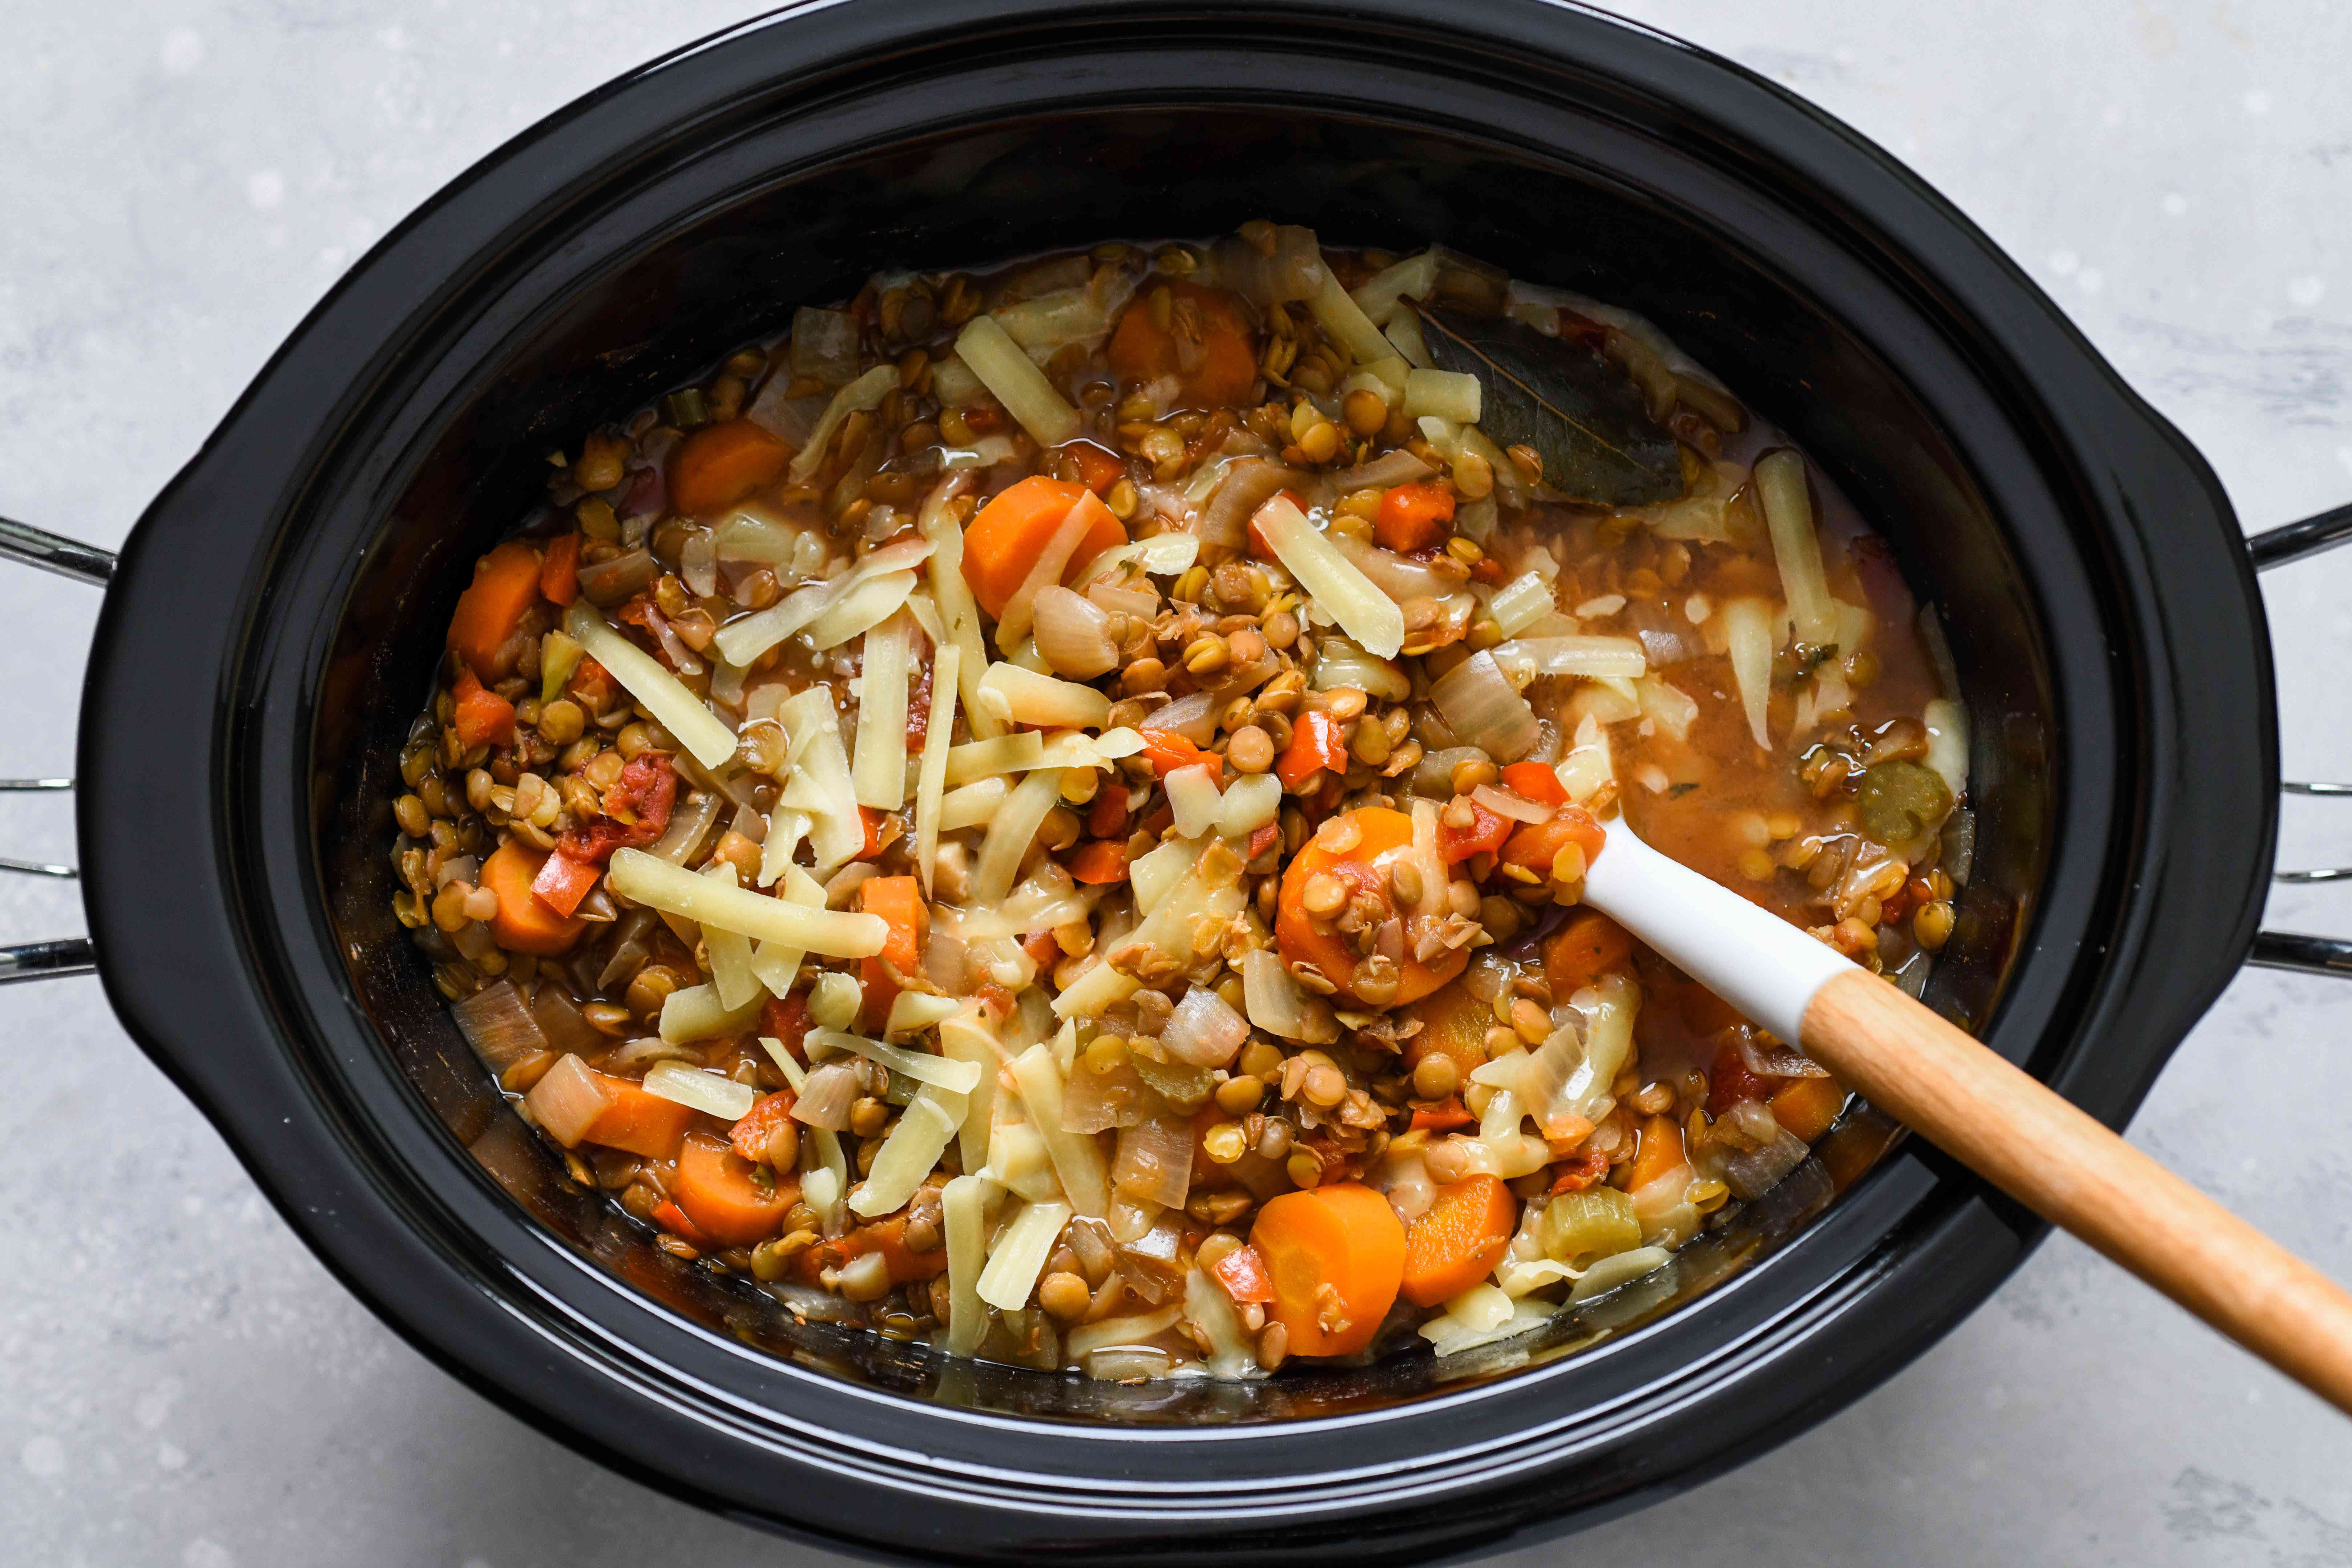 Stir the cheese into the slow cooker until it is melted